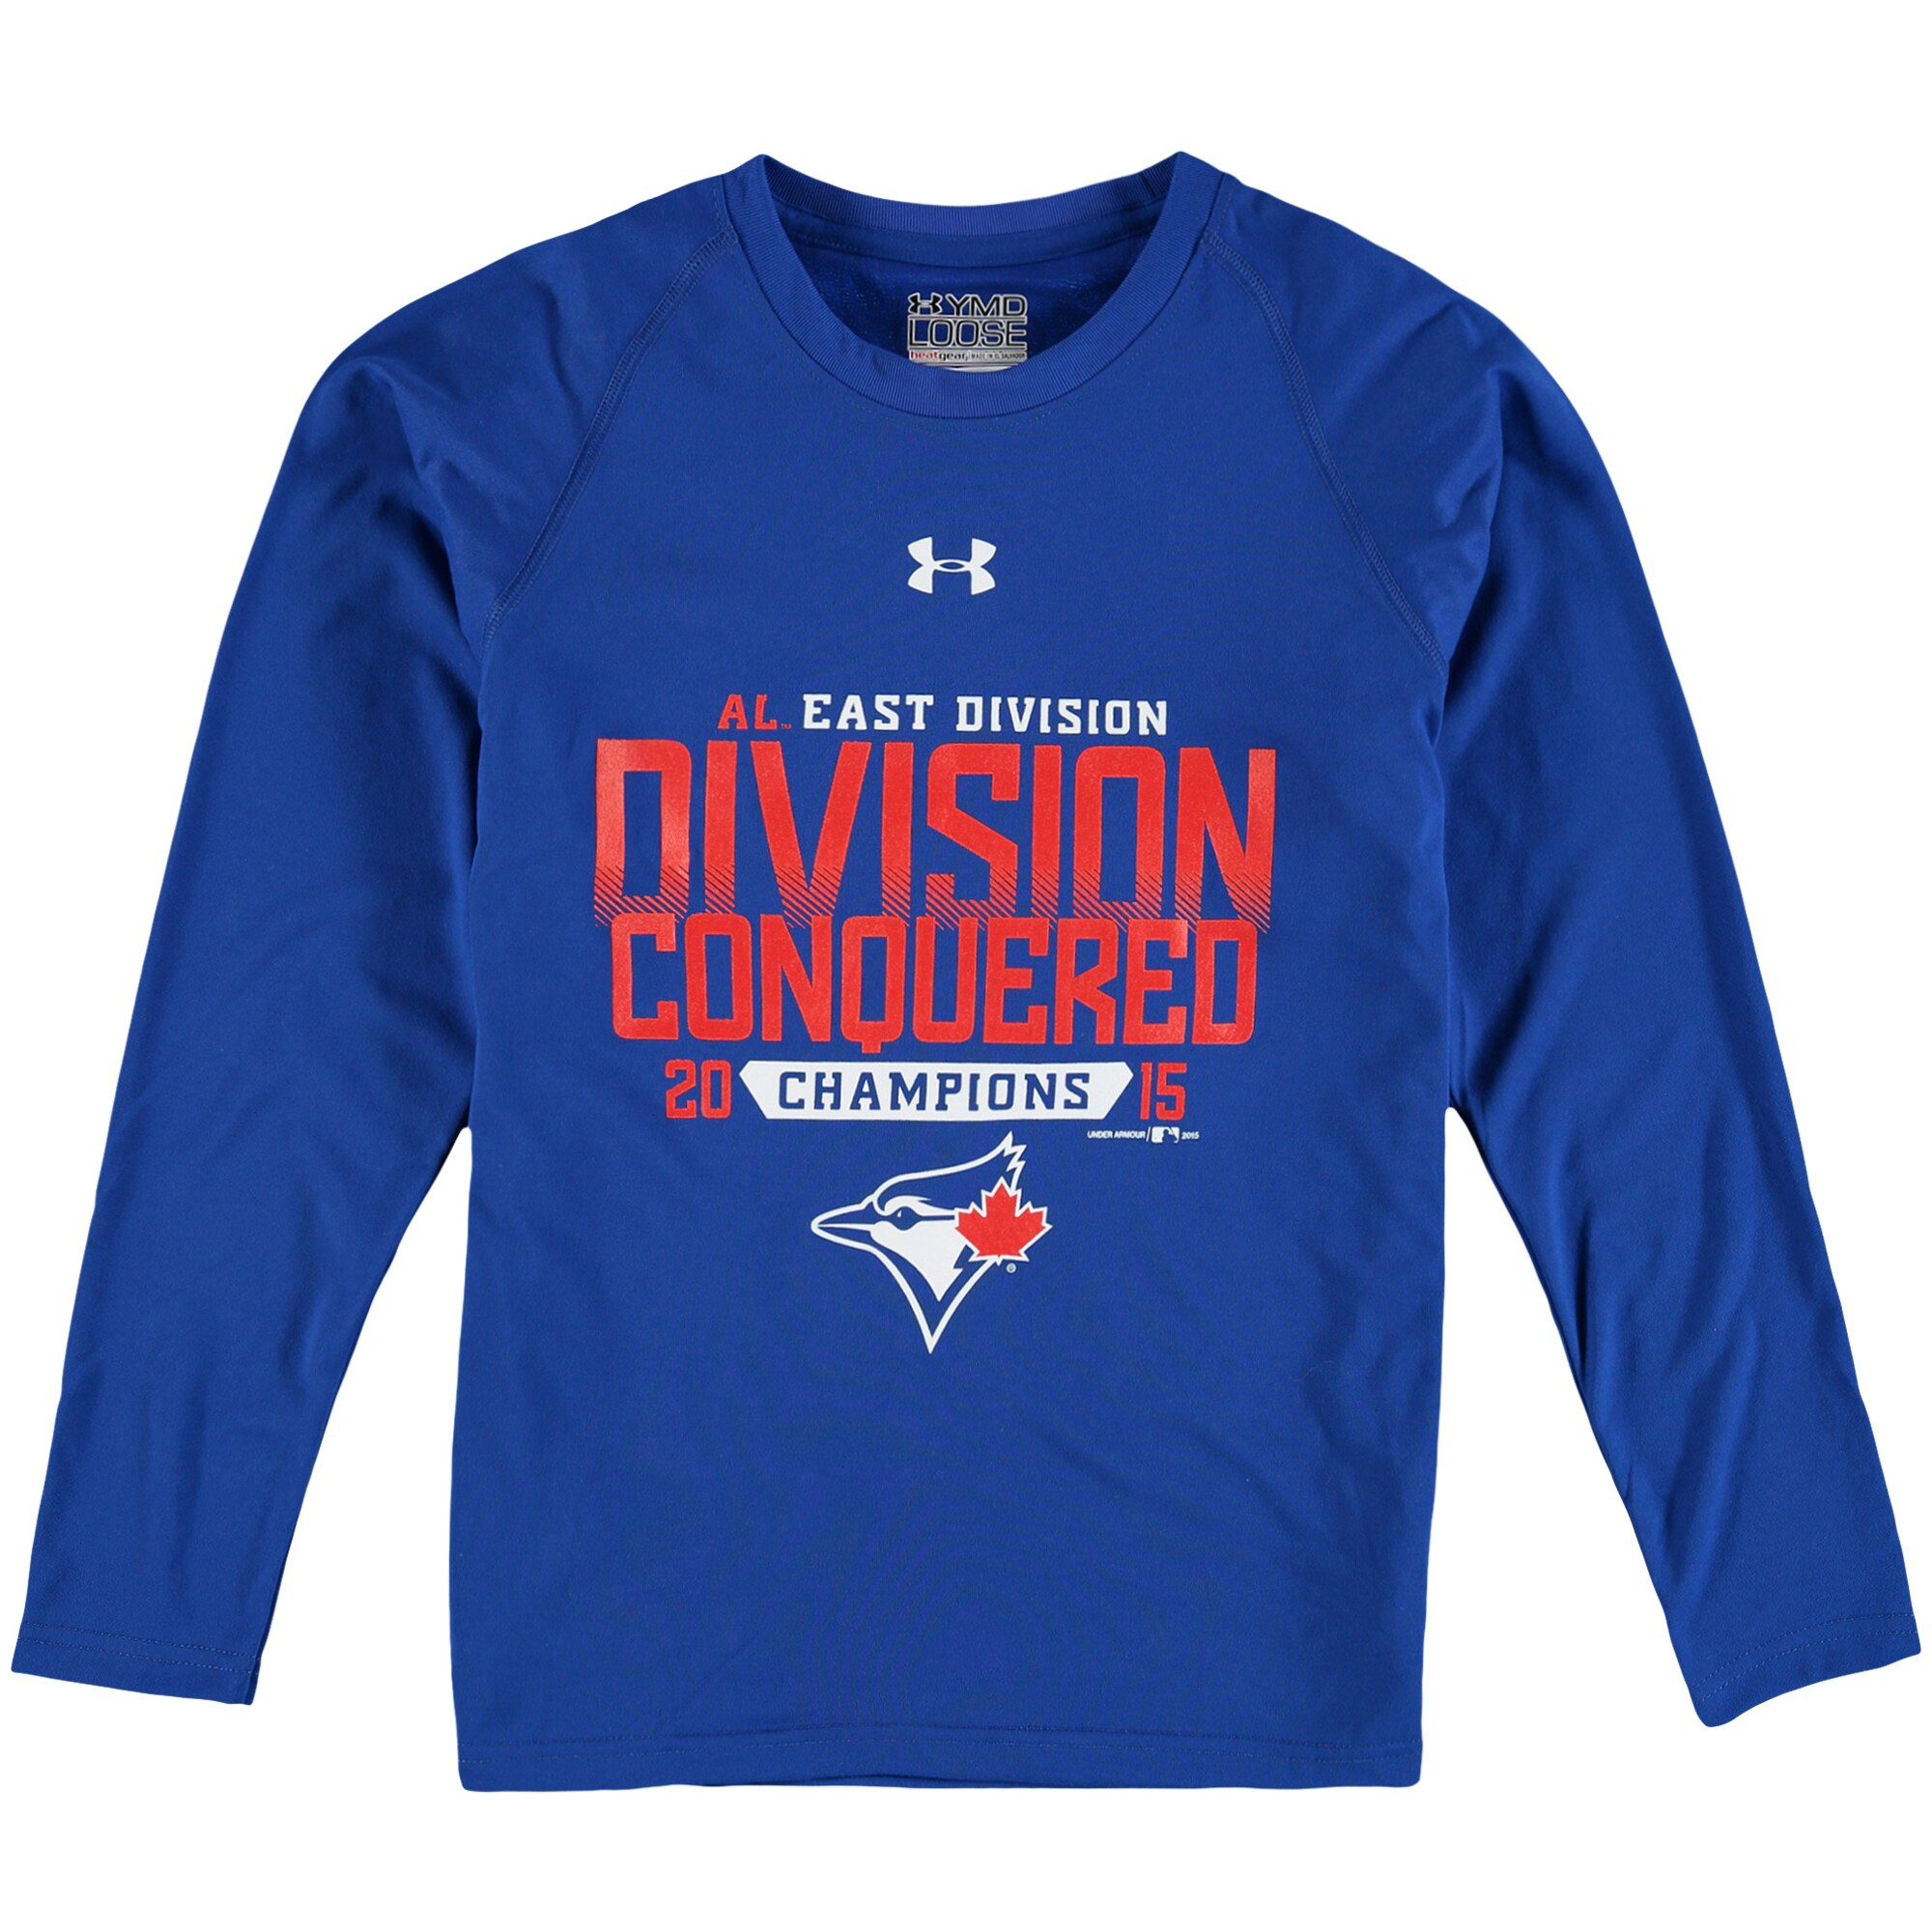 Toronto Blue Jays Under Armour Youth 2015 AL East Division Conquered Tech Long Sleeve T-Shirt - Royal